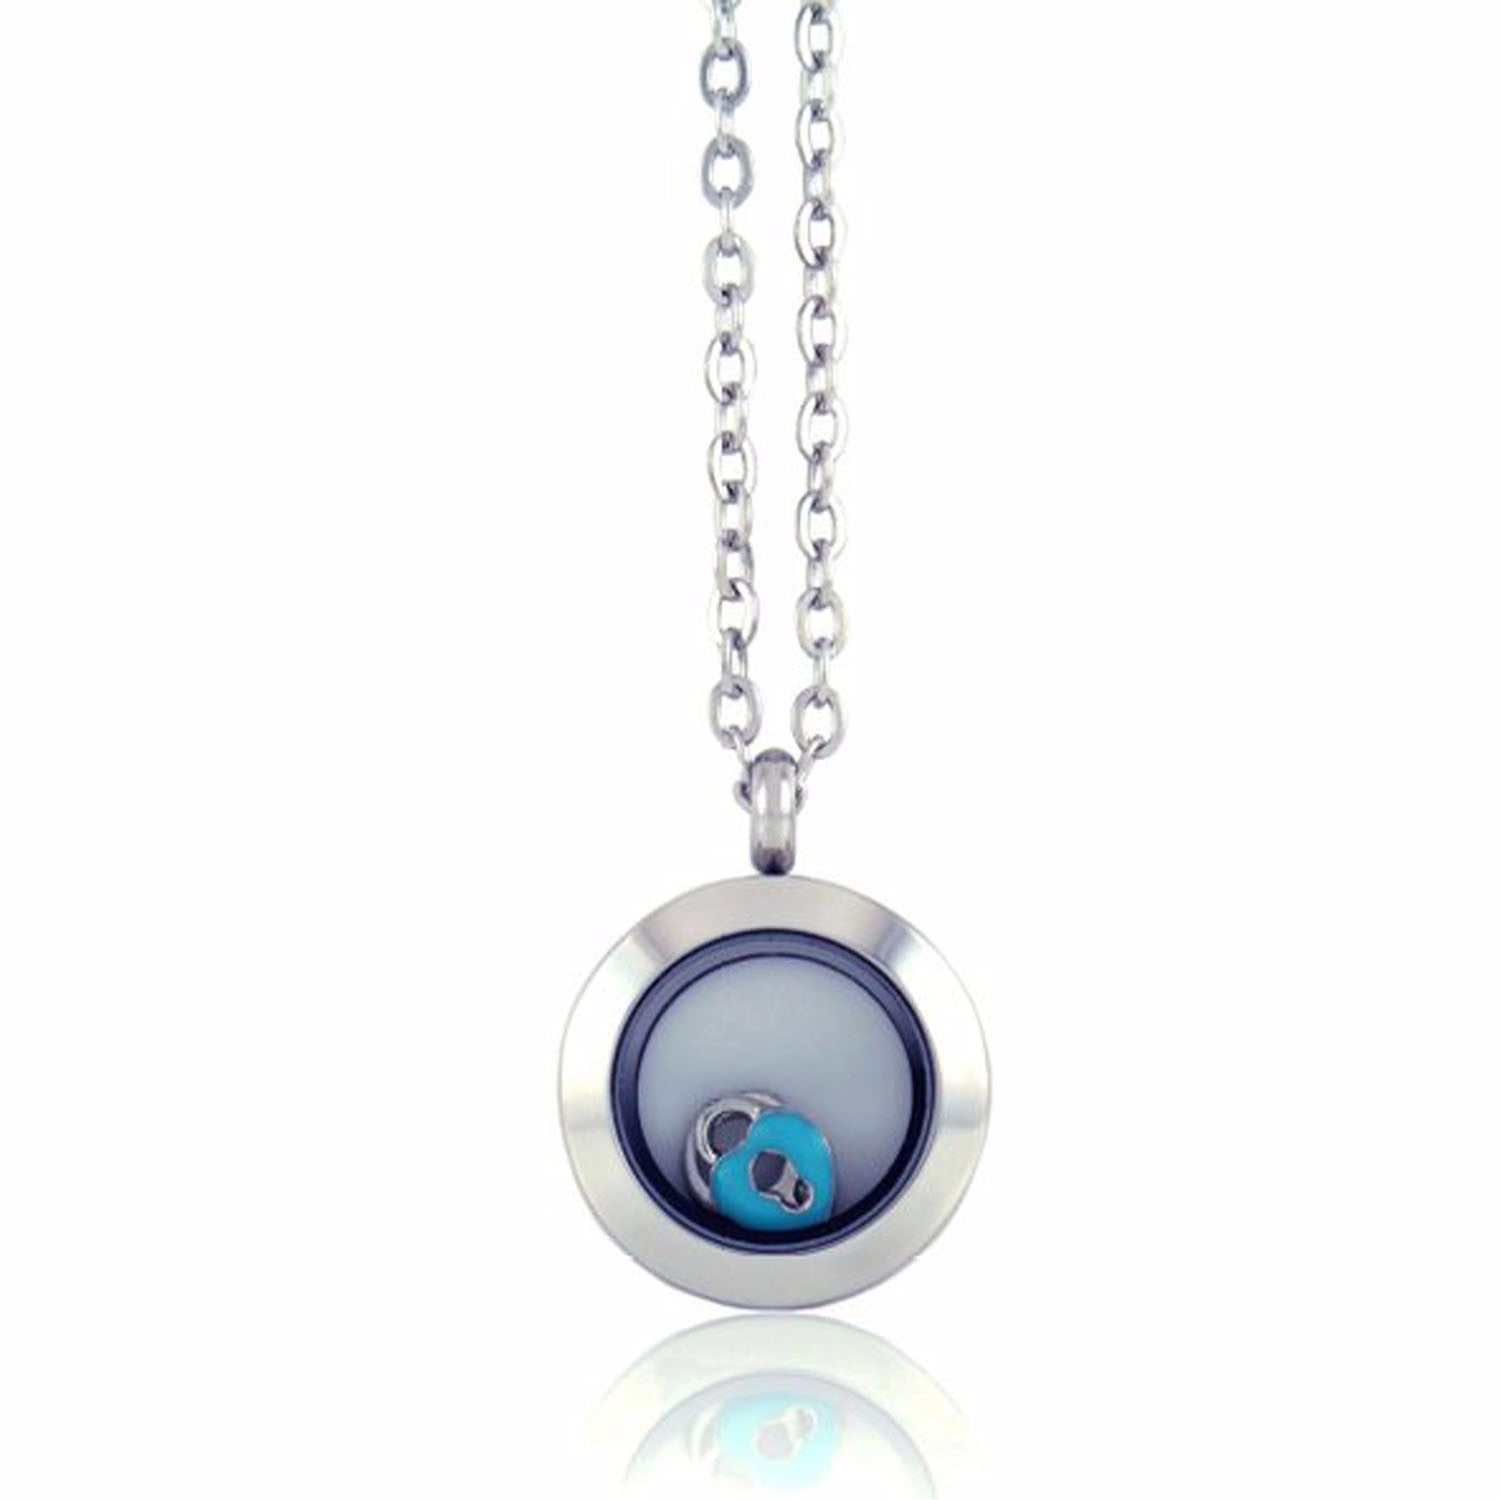 Stainless Steel Floating Locket Necklace with 4 Charms (Medium Silver No Stone)